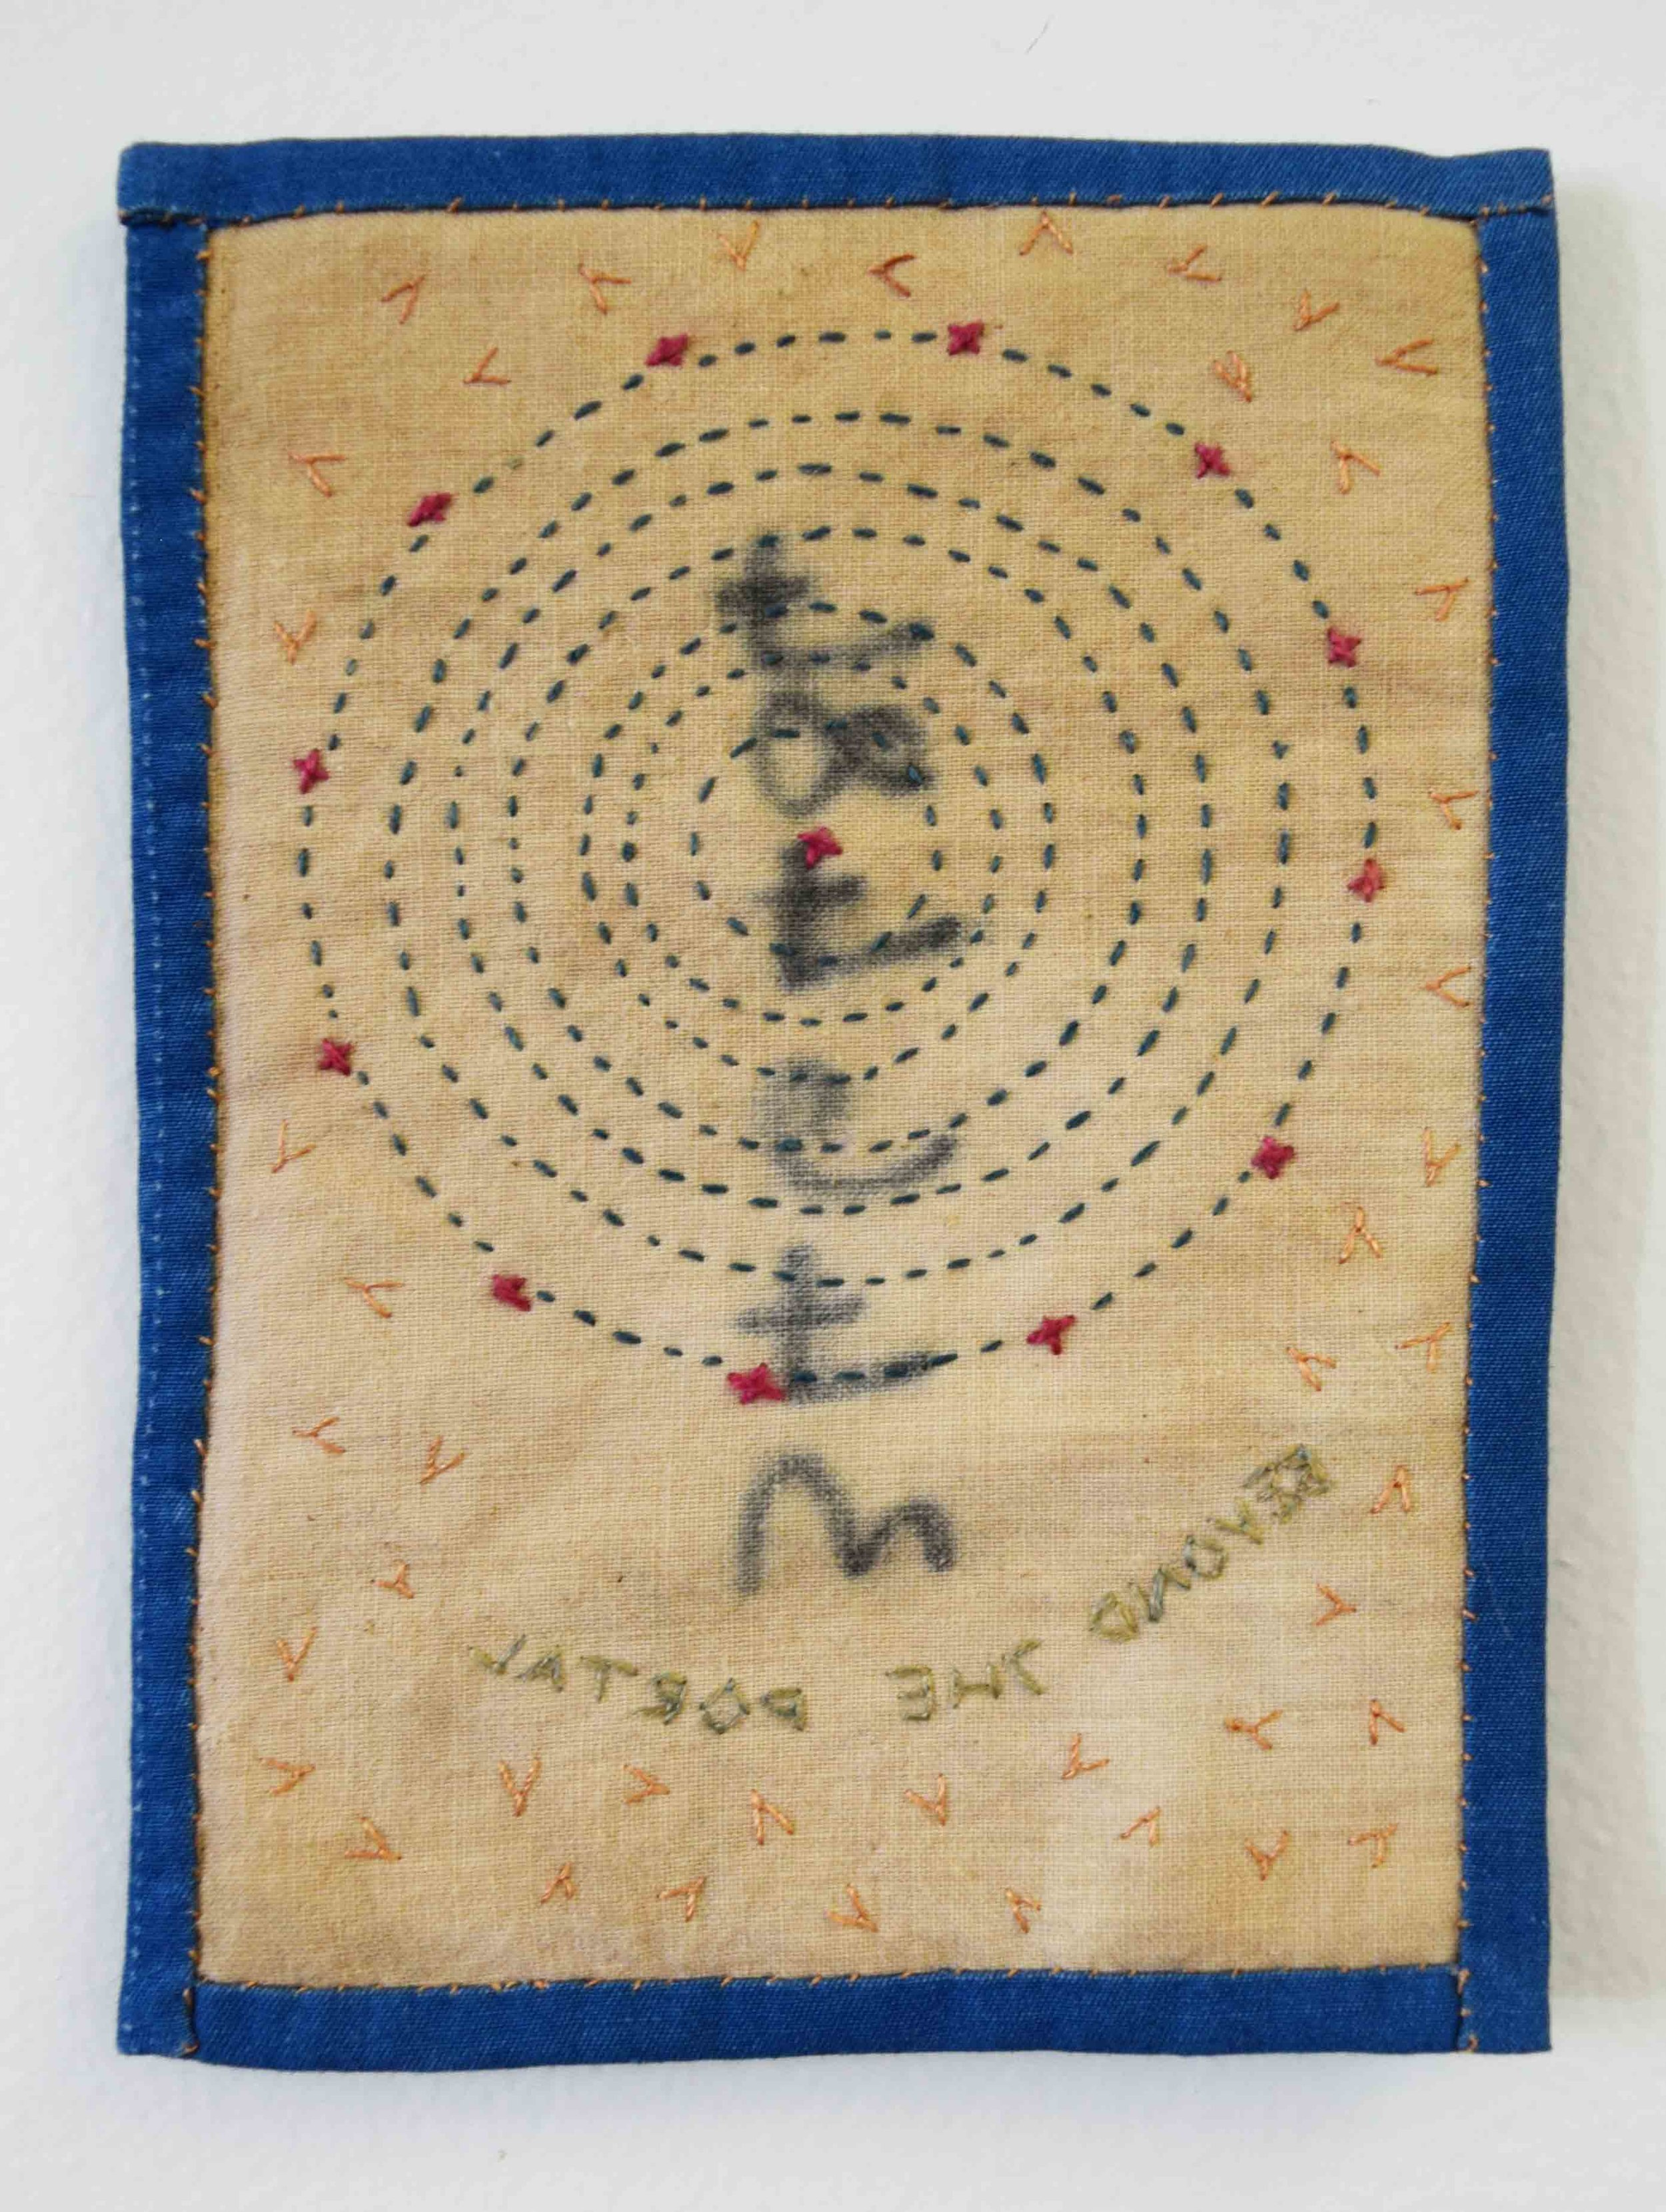 33. Anne Williams,  When Point Becomes Periphery , 2018, hand stitched cotton and silk, natural dyeing, 160 x 12 cm $95